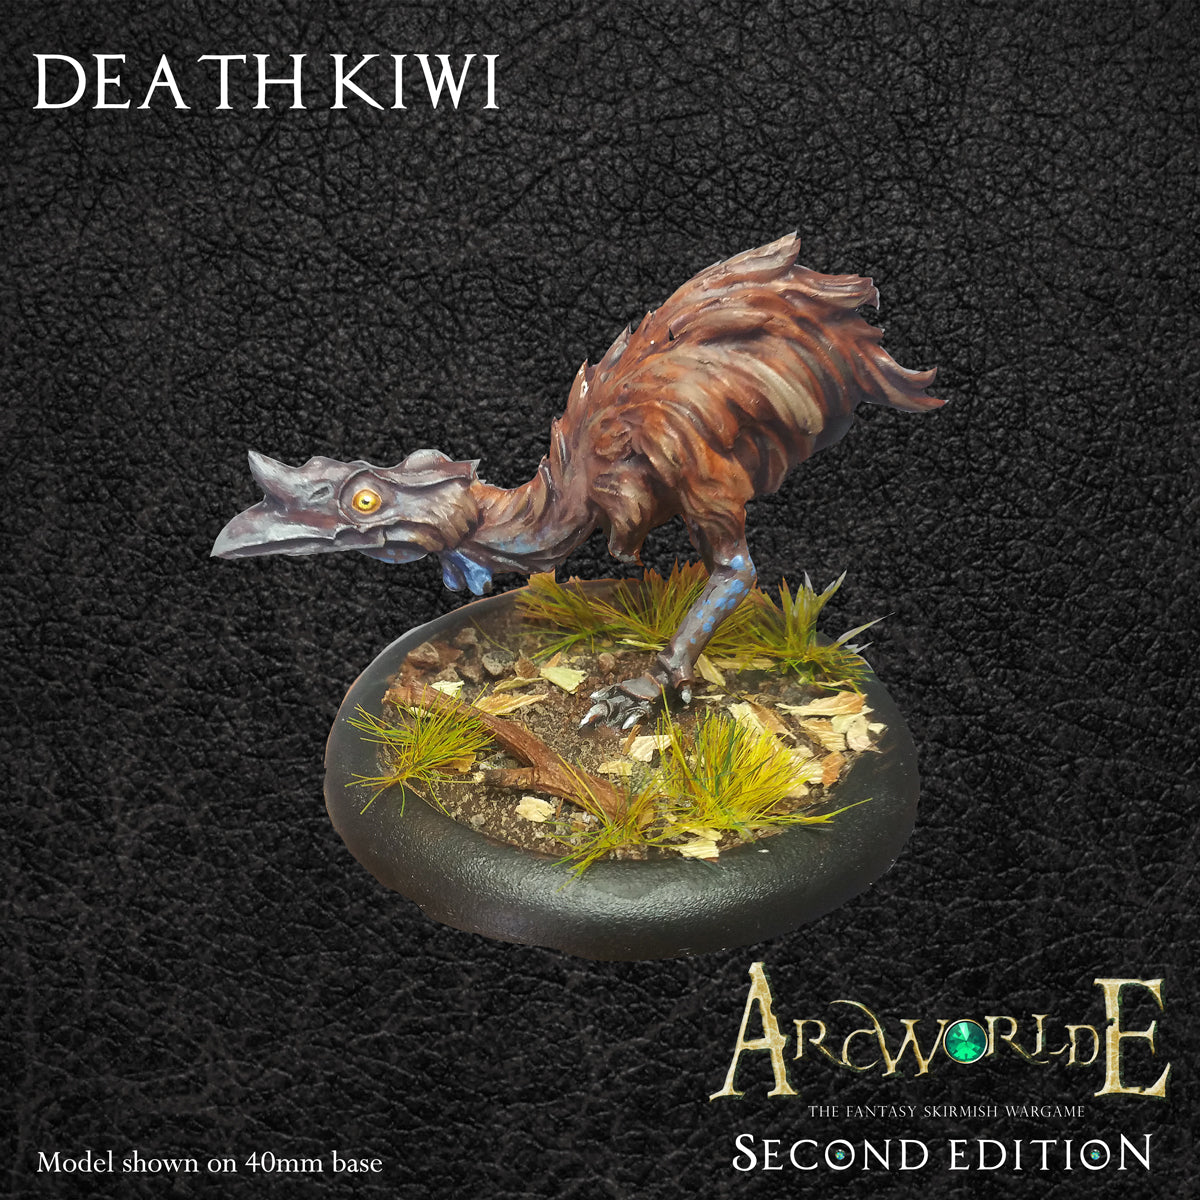 2nd-Ed-Death-Kiwi.jpg